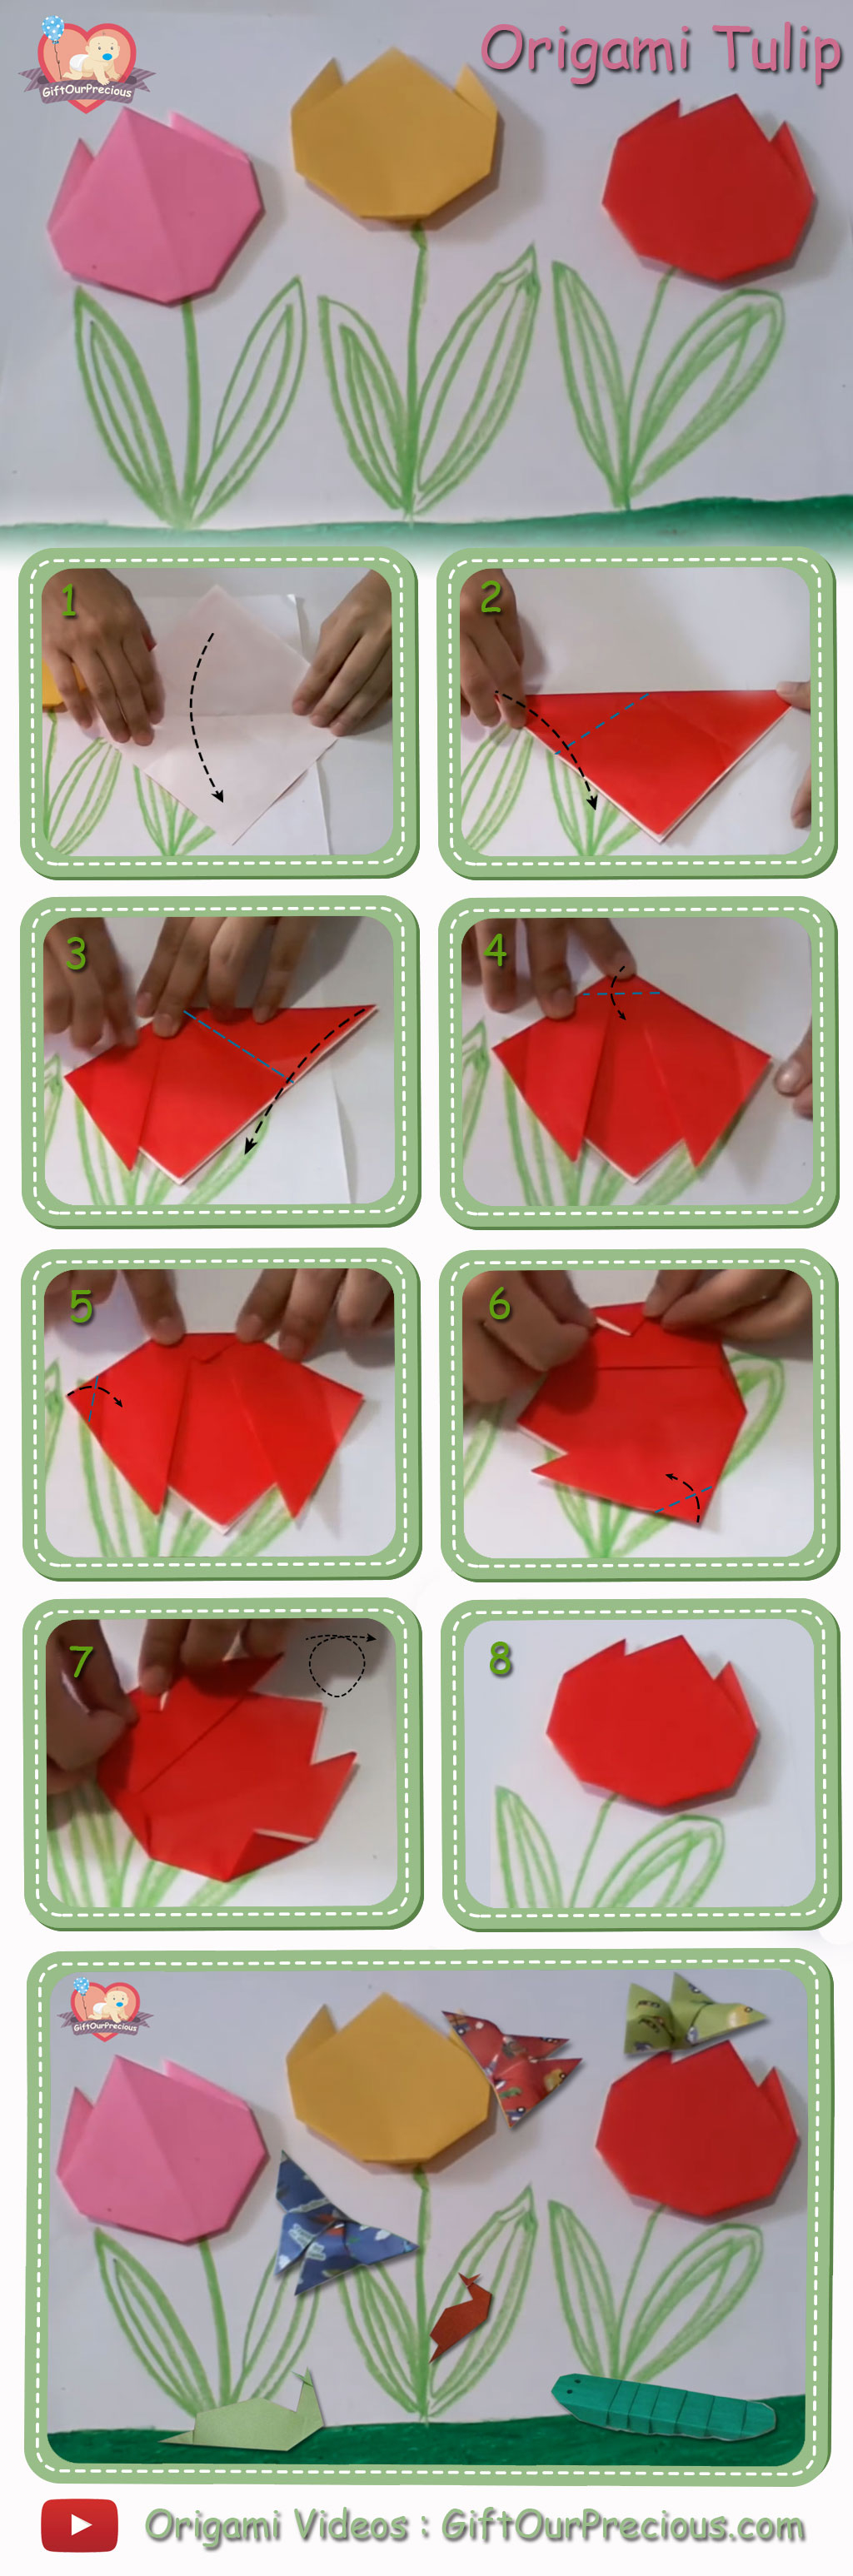 How To Make An Origami Tulip Origami Tulip Flowers Step Step Instruction Gift Our Precious